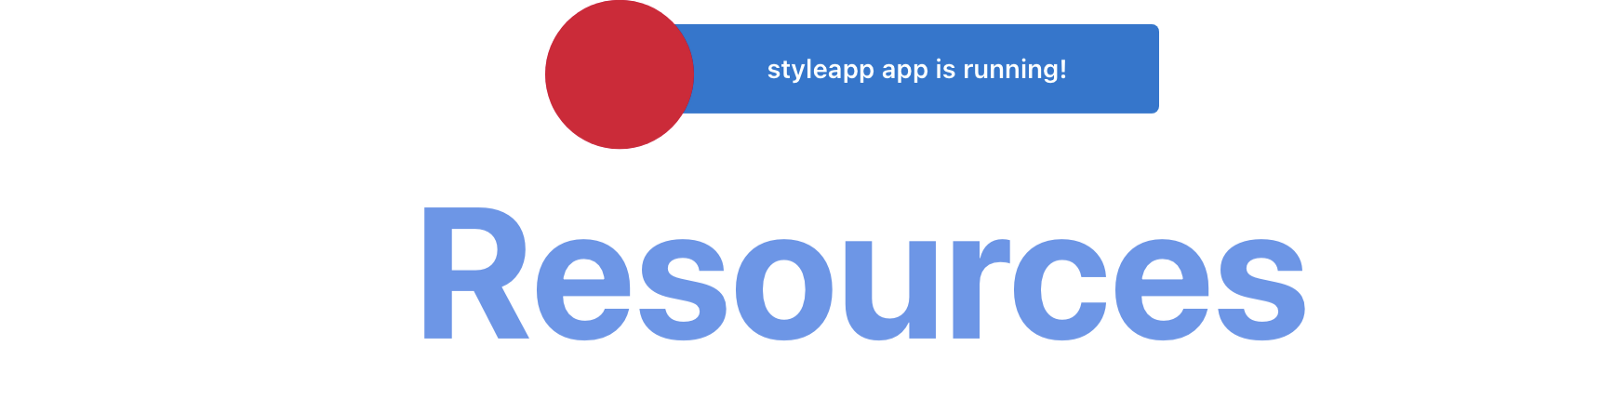 The Resources label is now much larger and in light blue instead of black.